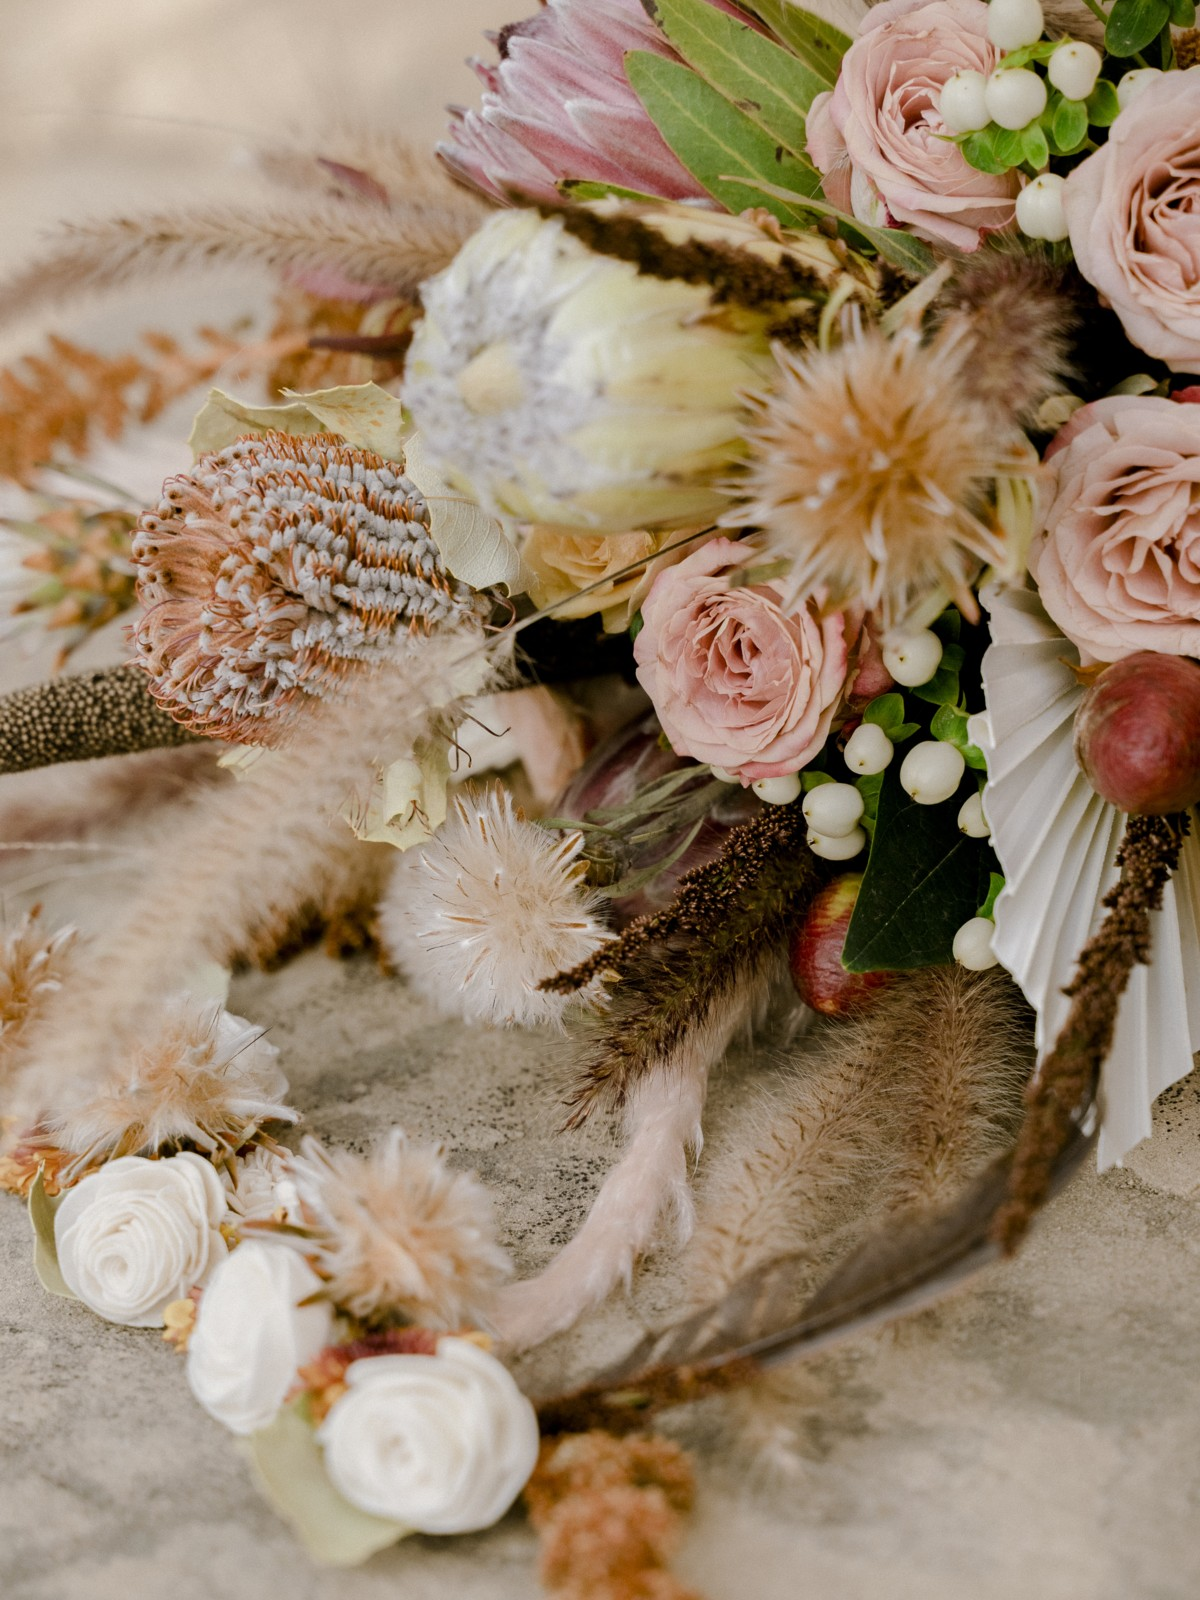 Inspirations by Gina - Lake Tahoe wedding florist - centerpiece closeup